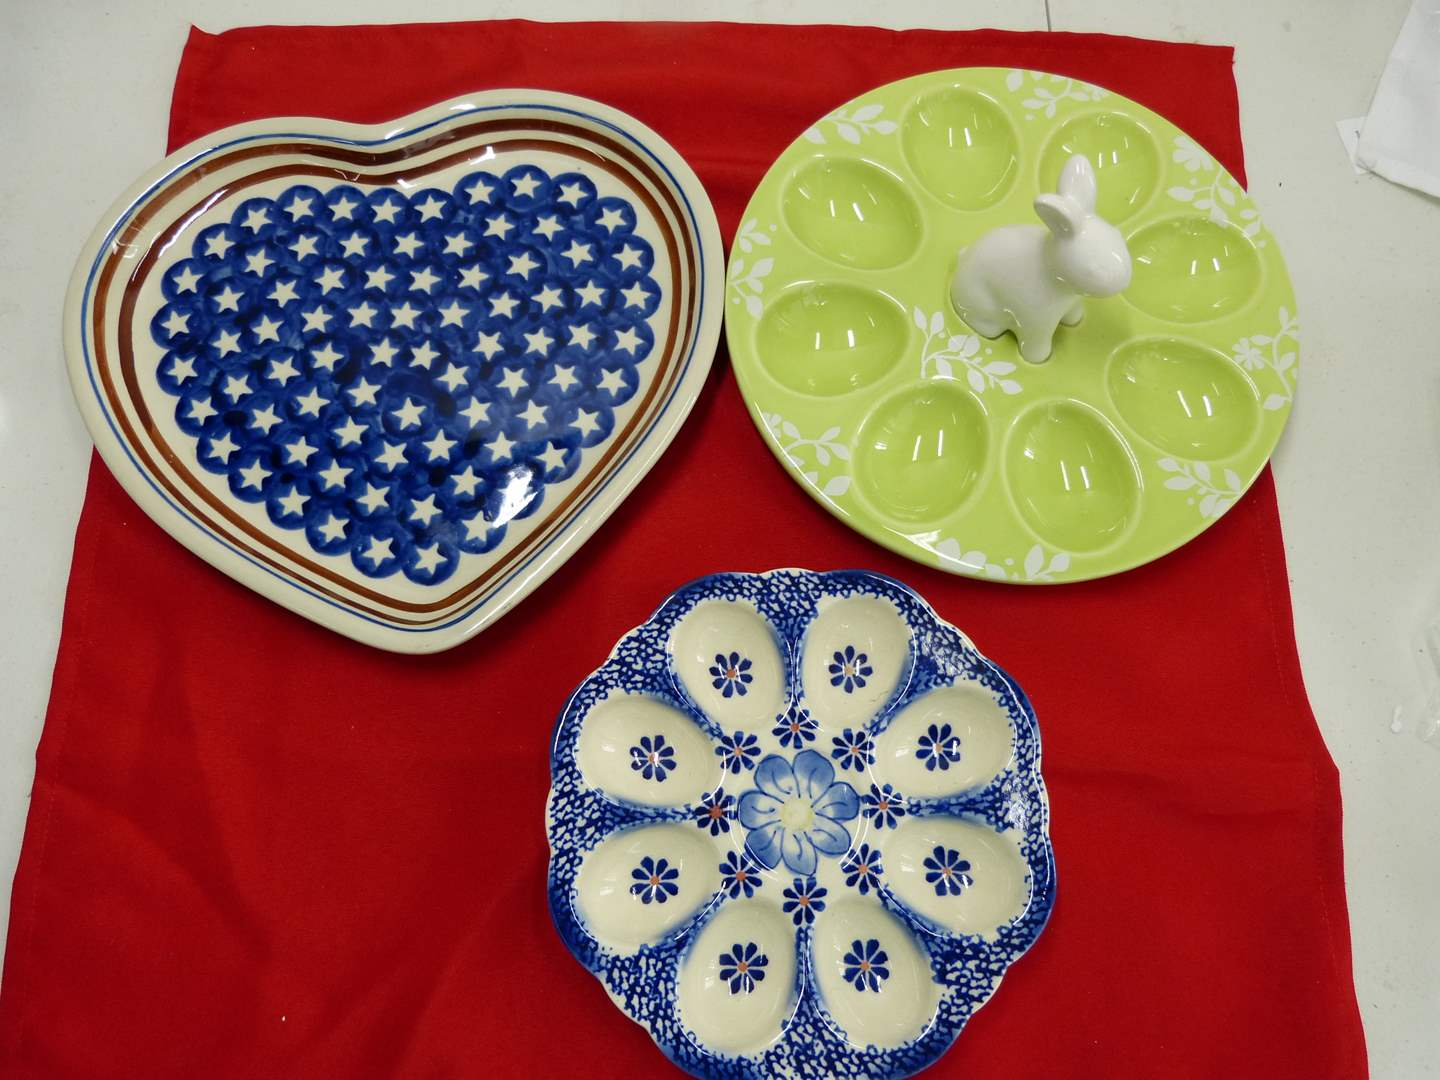 Lot # 231  3 great serving pieces to include 2 deviled egg platters & heart shape pan made in Poland